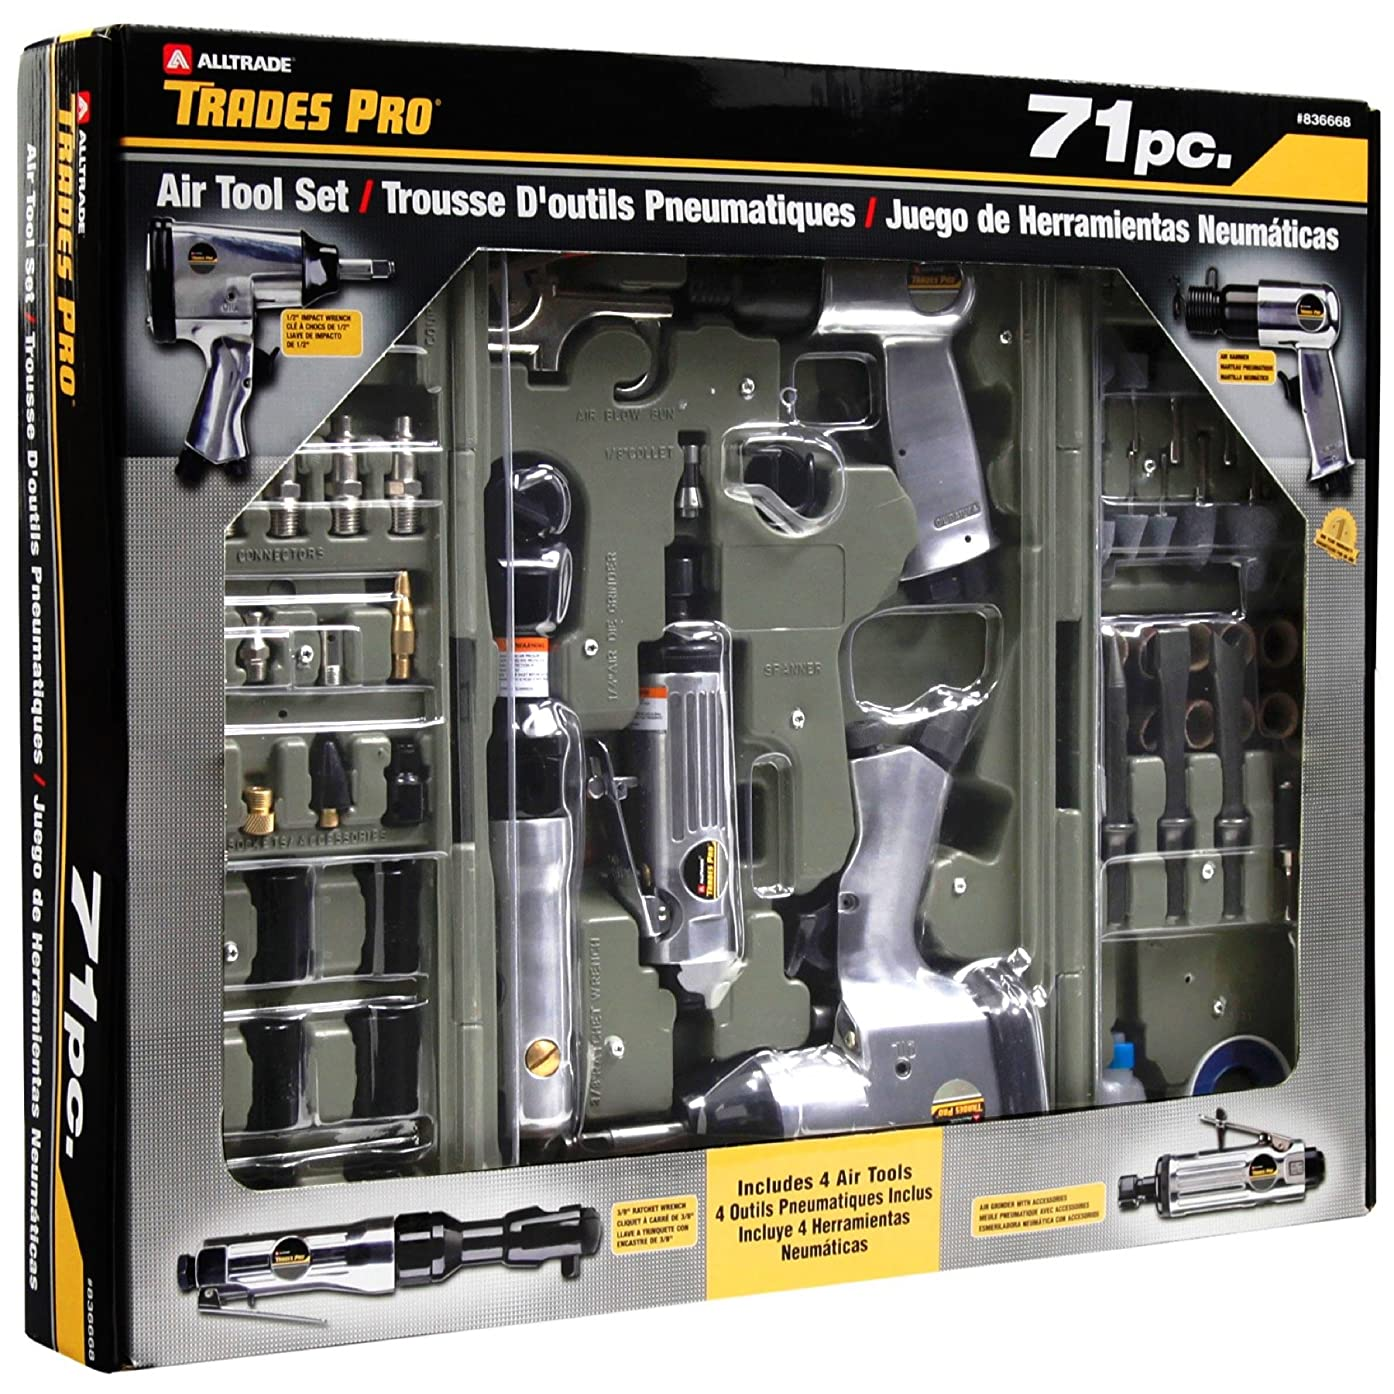 Tradespro 836668 Air Tools and Accessories, 71-Piece